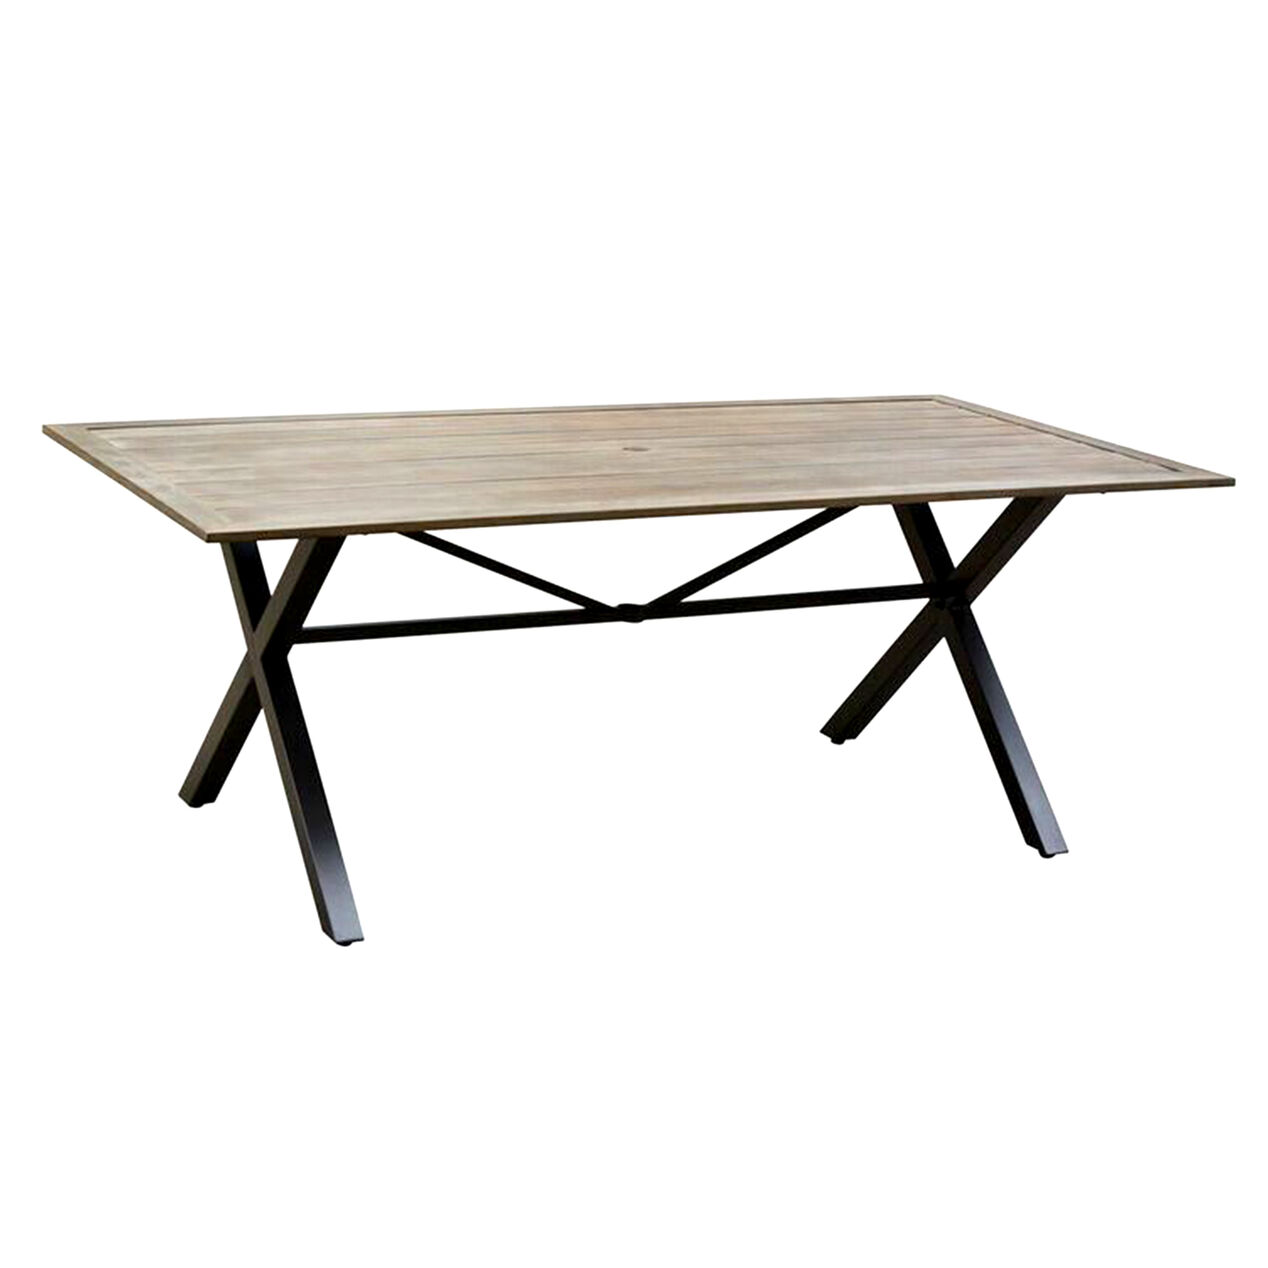 Highland terrace dining table 74x39 in at home for Terrace table